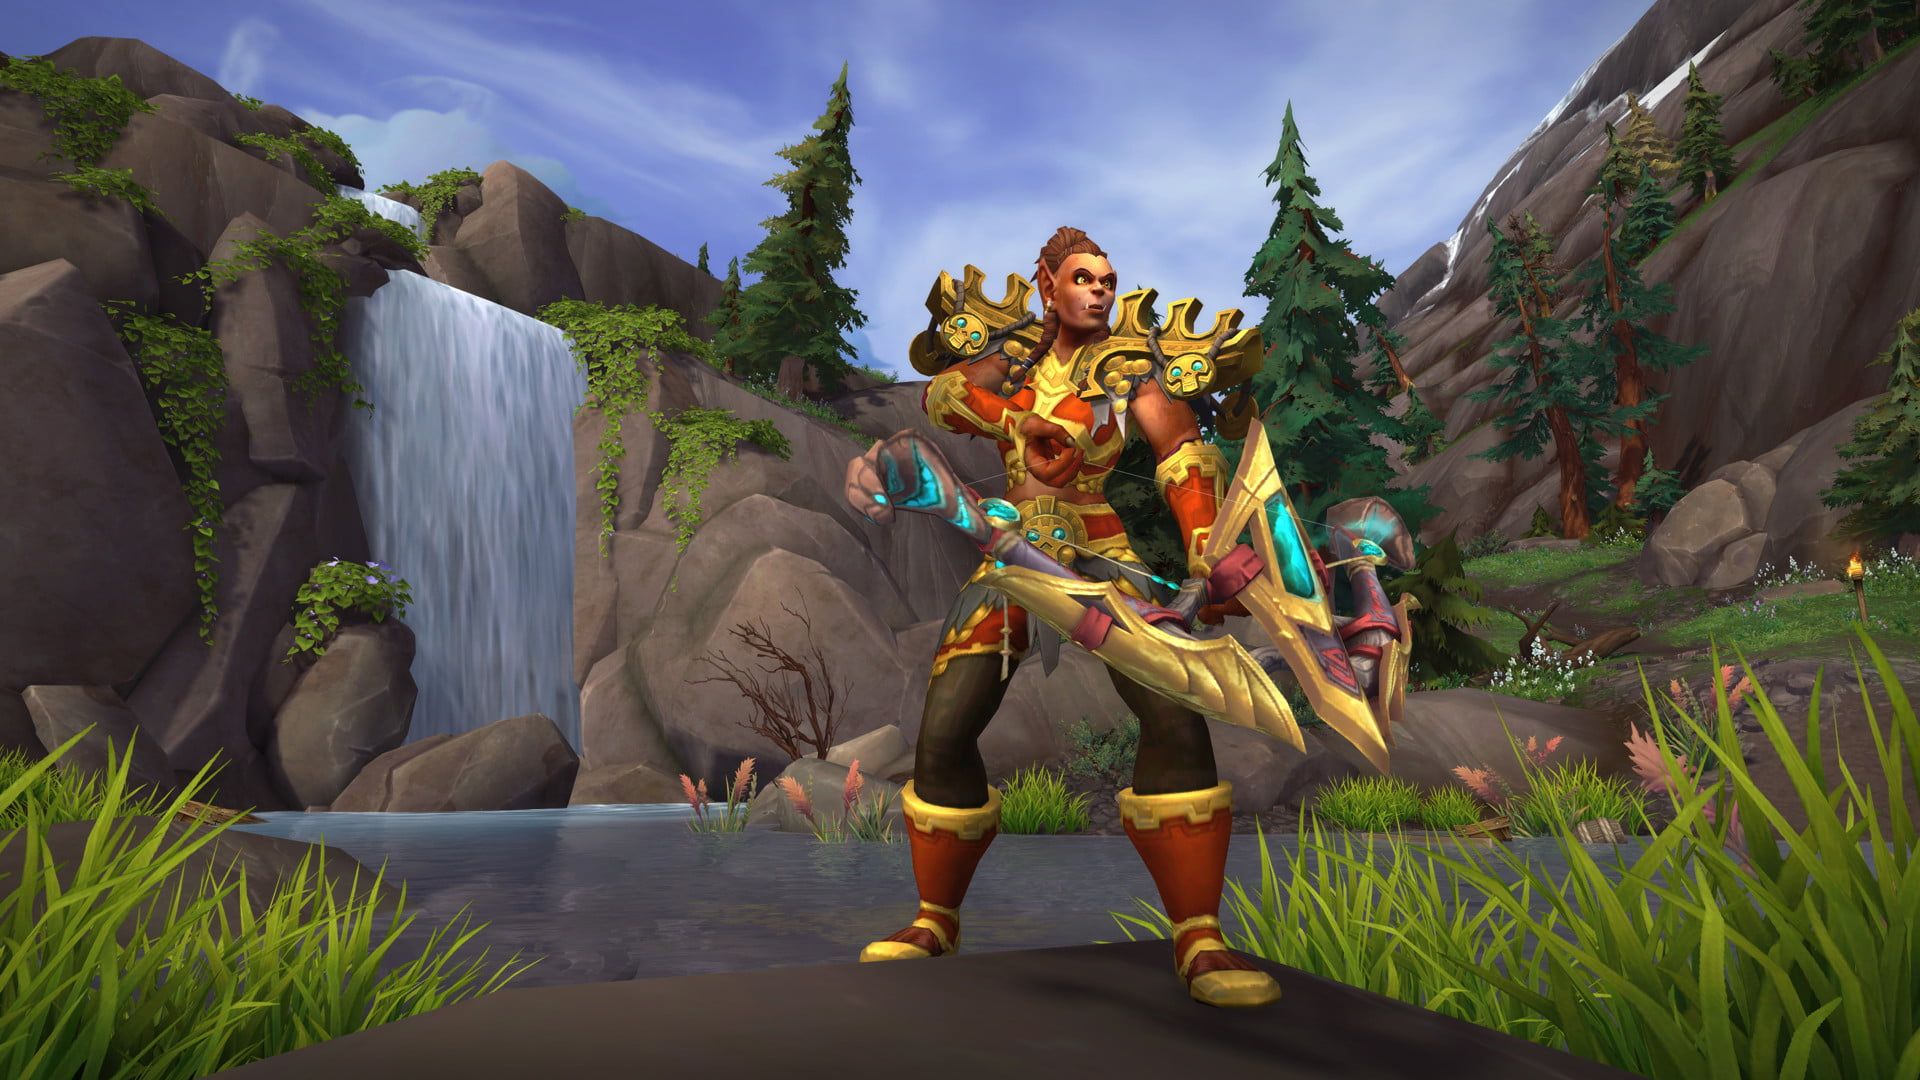 Battle for Azeroth Review: An Explosive Start That Fizzles | Digital